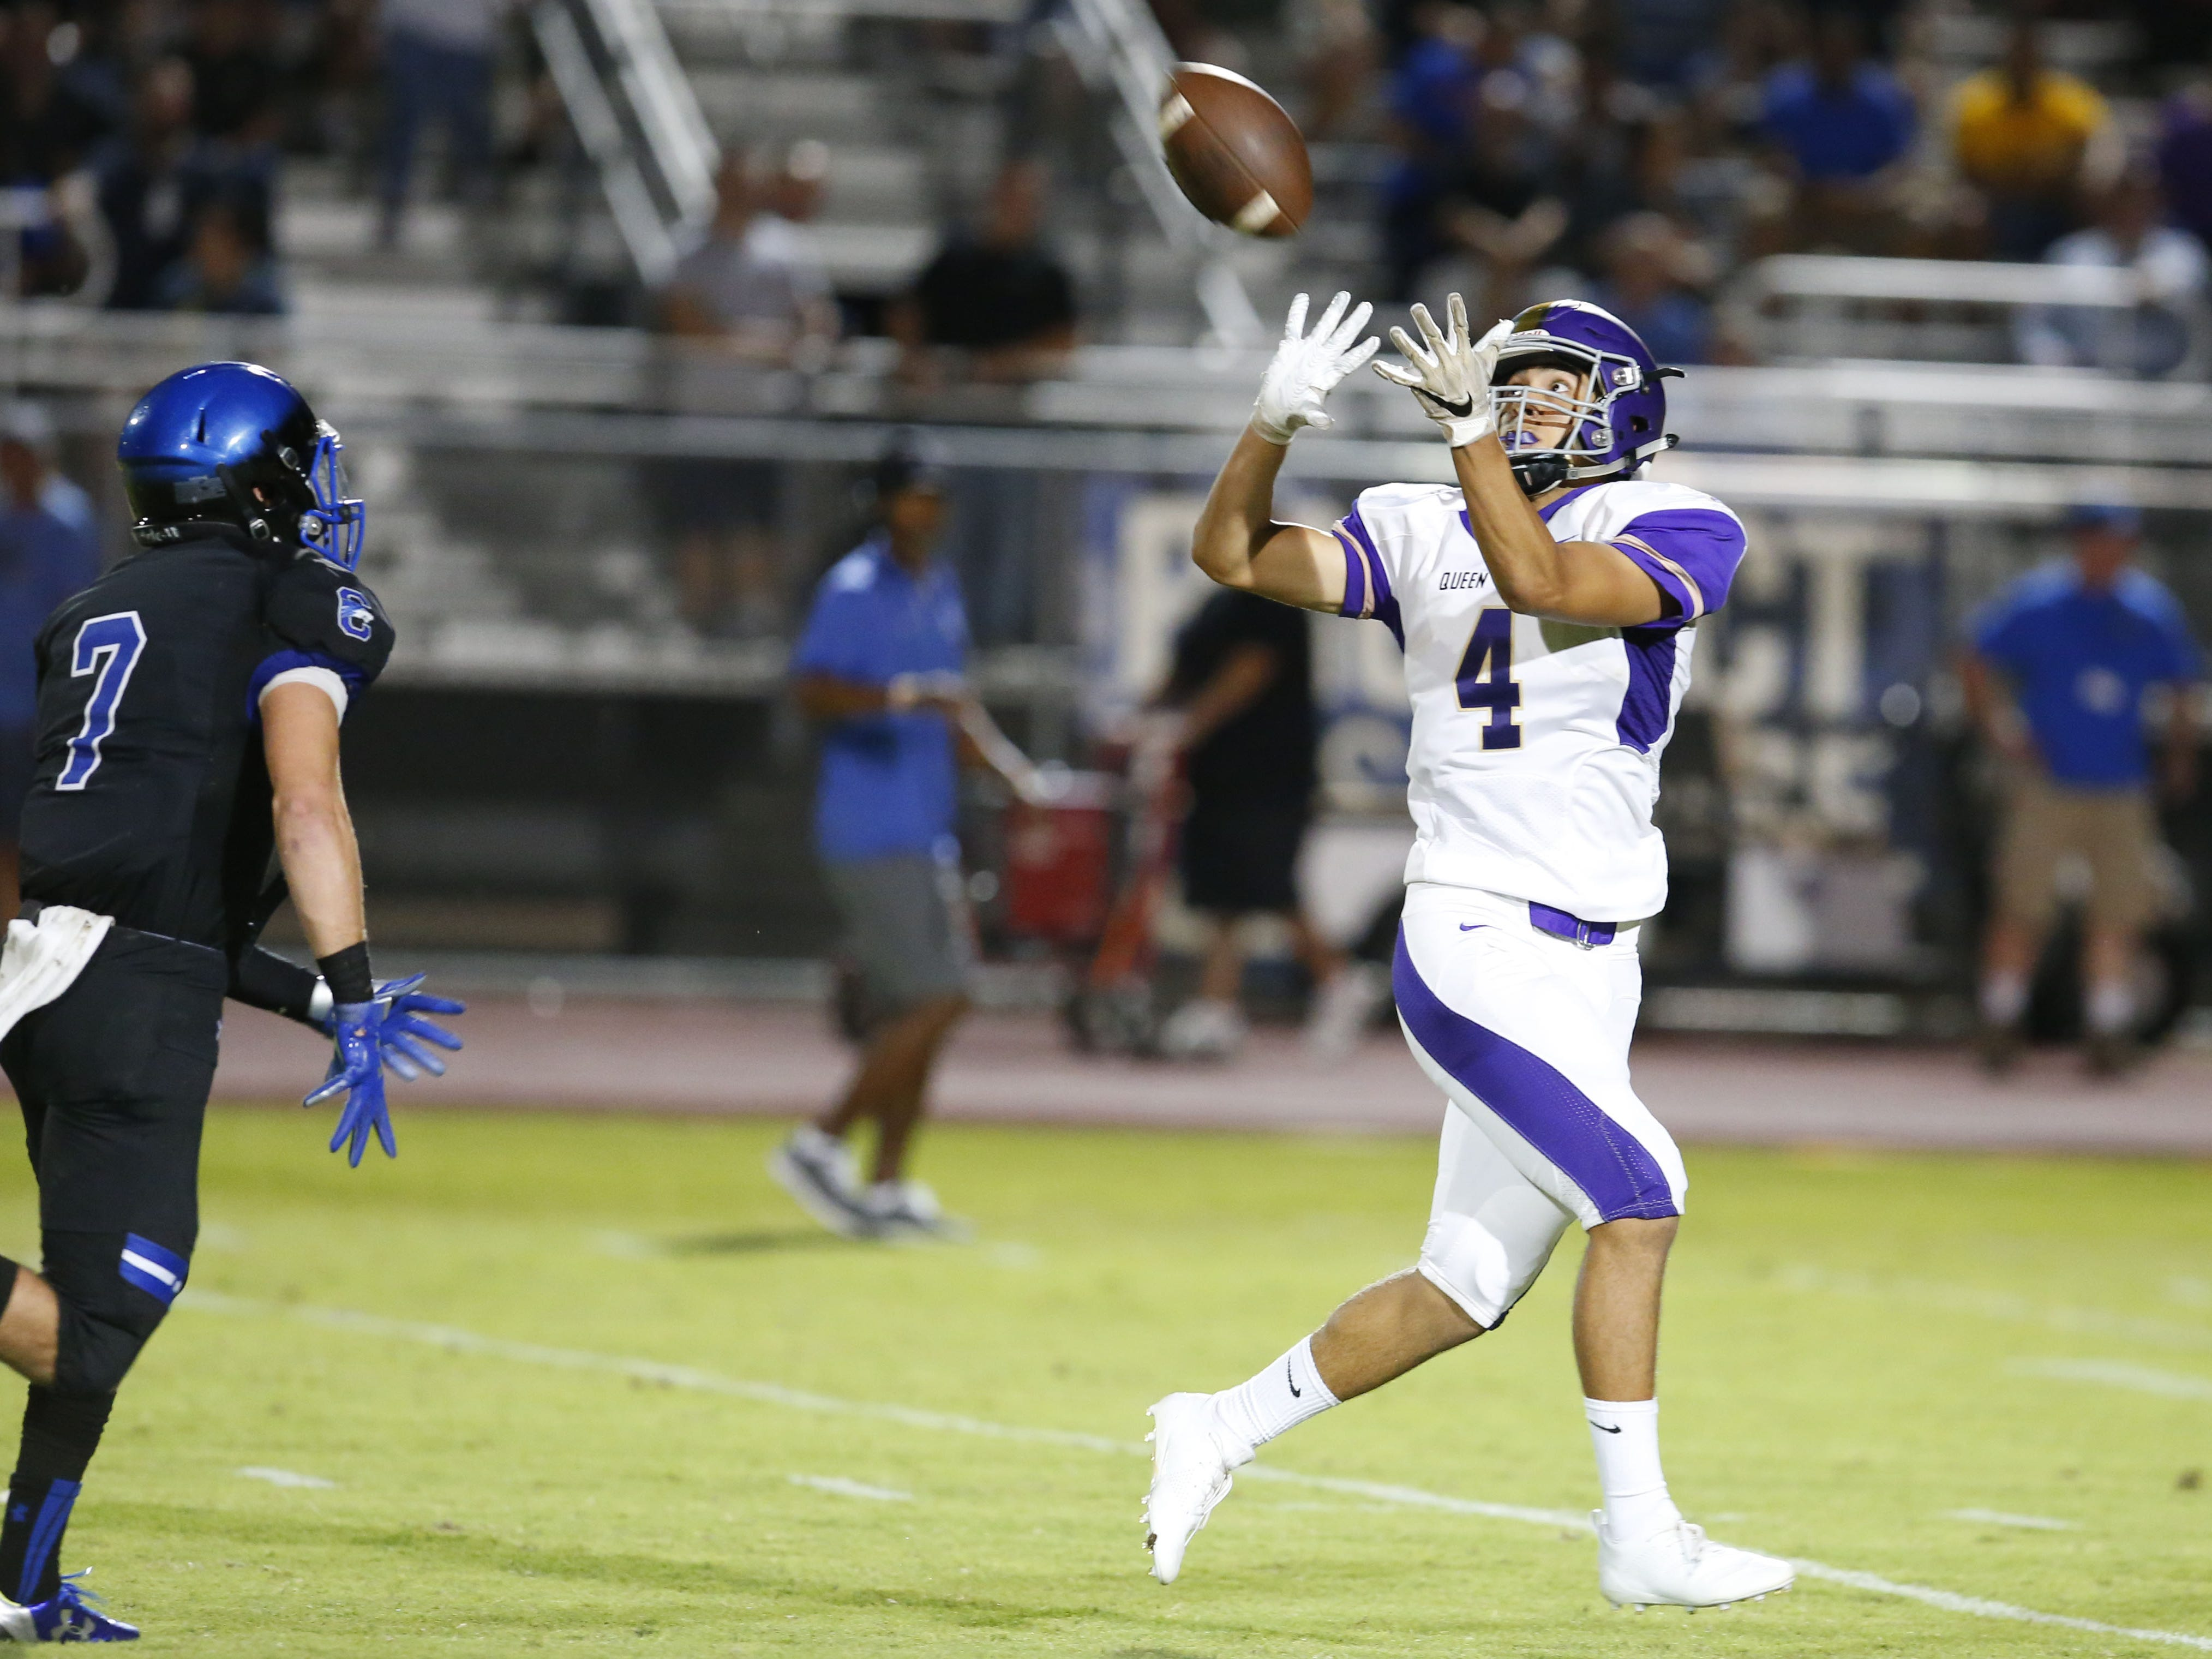 Queen Creek Alec Prochazka (4) completes the catch for a touchdown during a high school football game against Chandler at Chandler High on August 24, 2018. #azhsfb